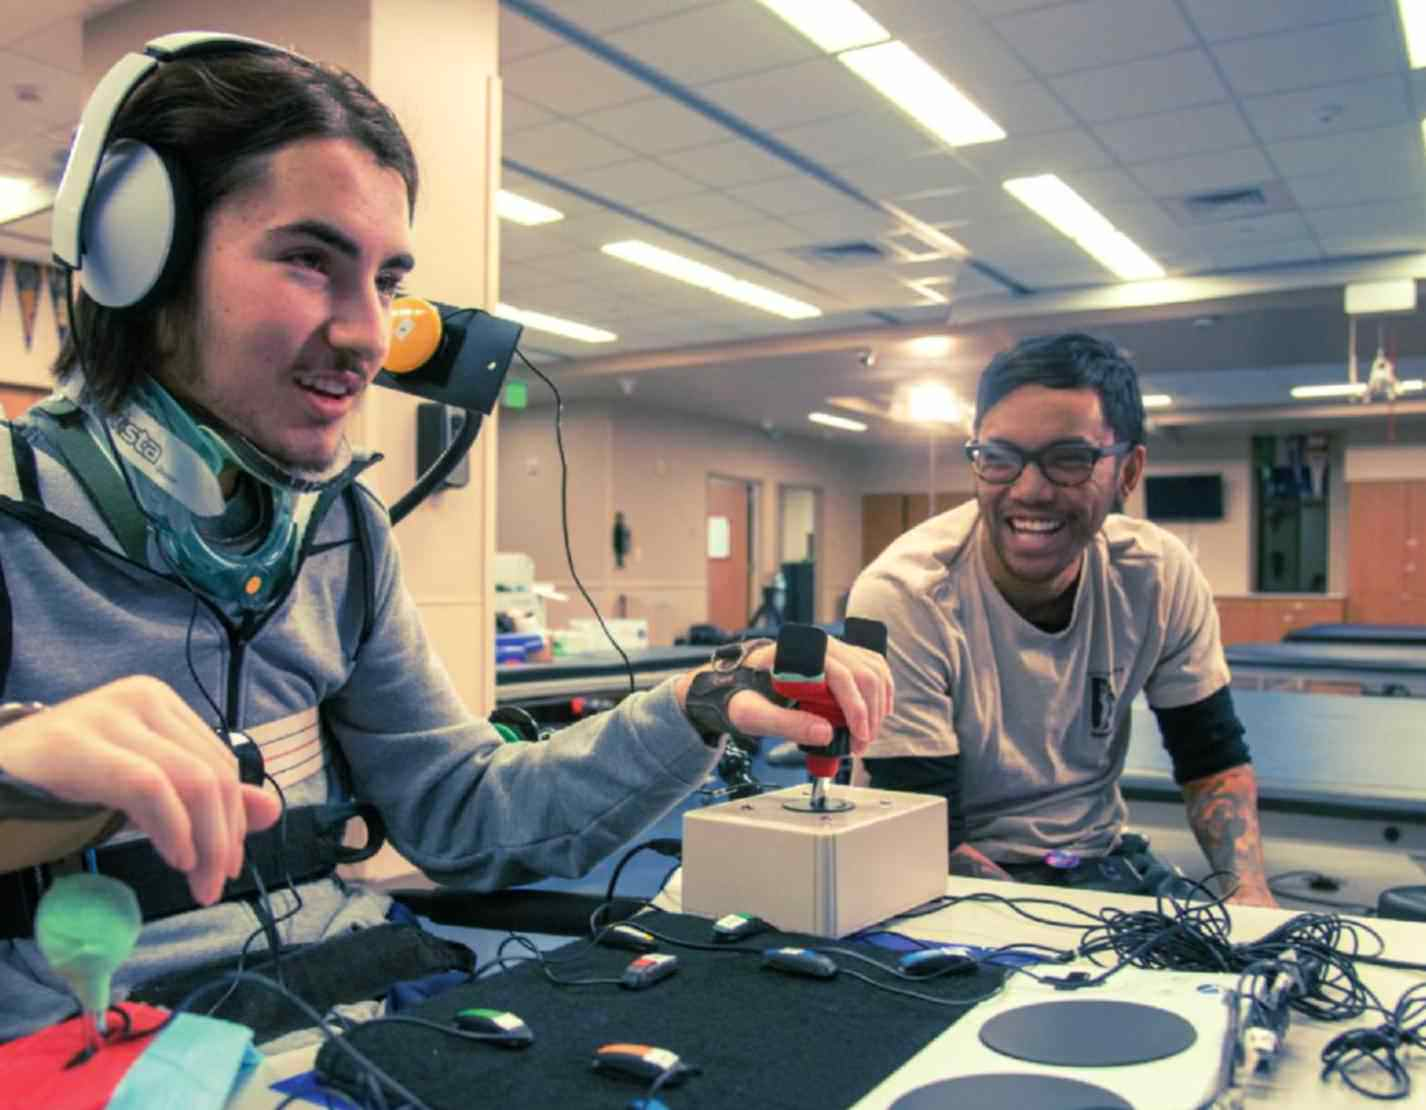 Making Games Inclusive For Gamers With Disabilities